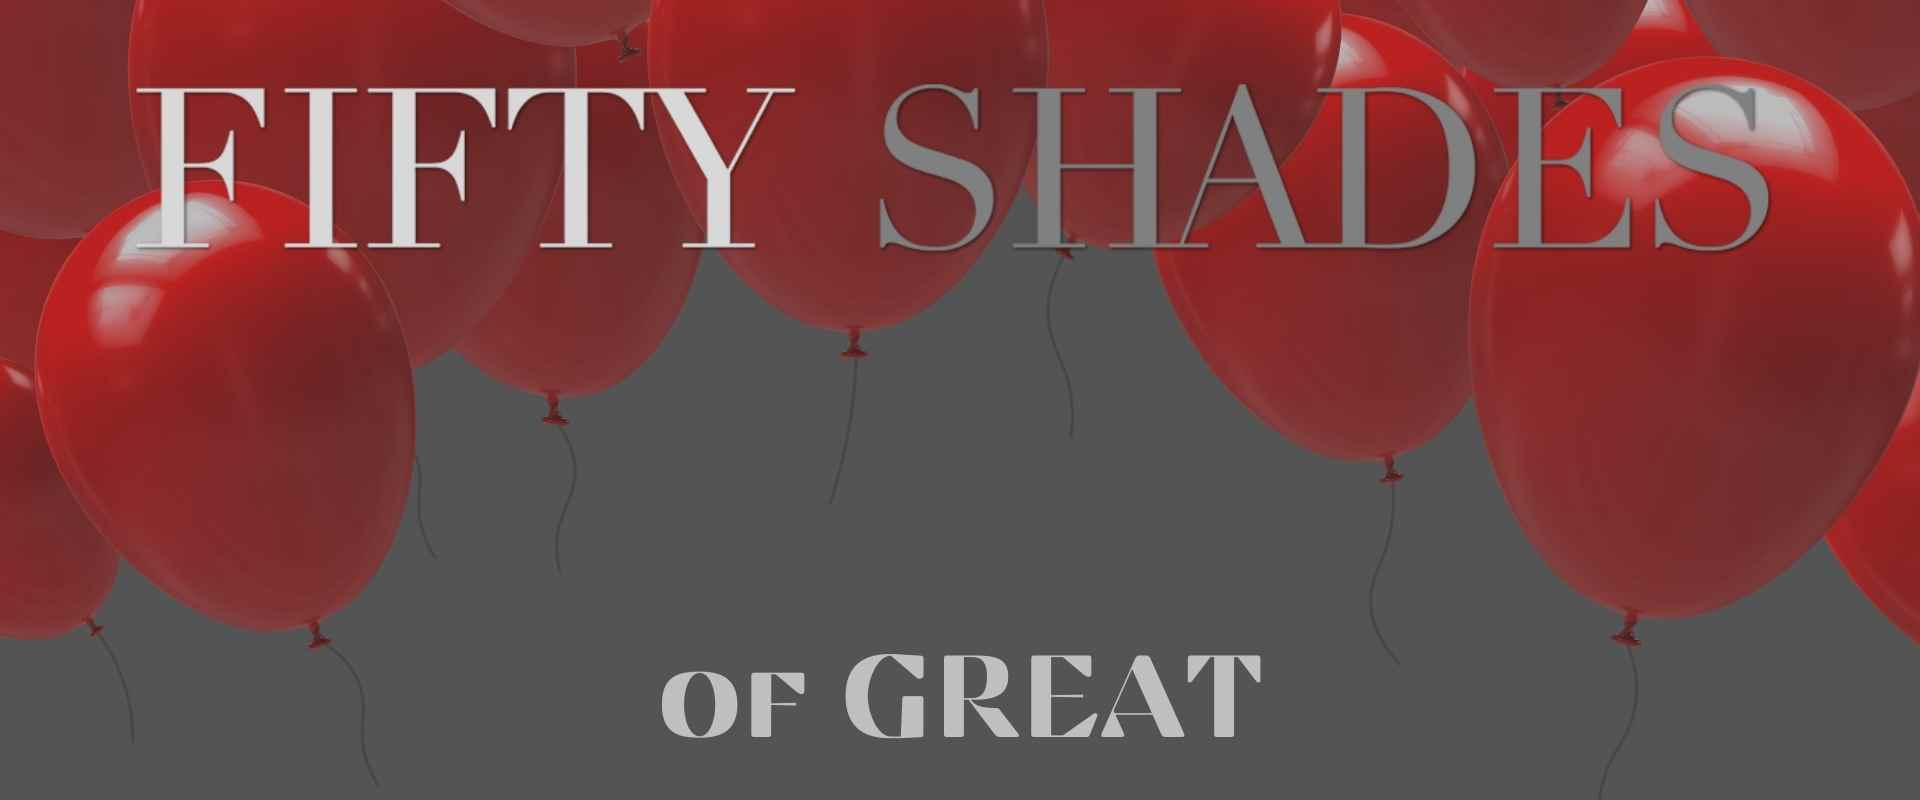 Fifty Shades Of Great